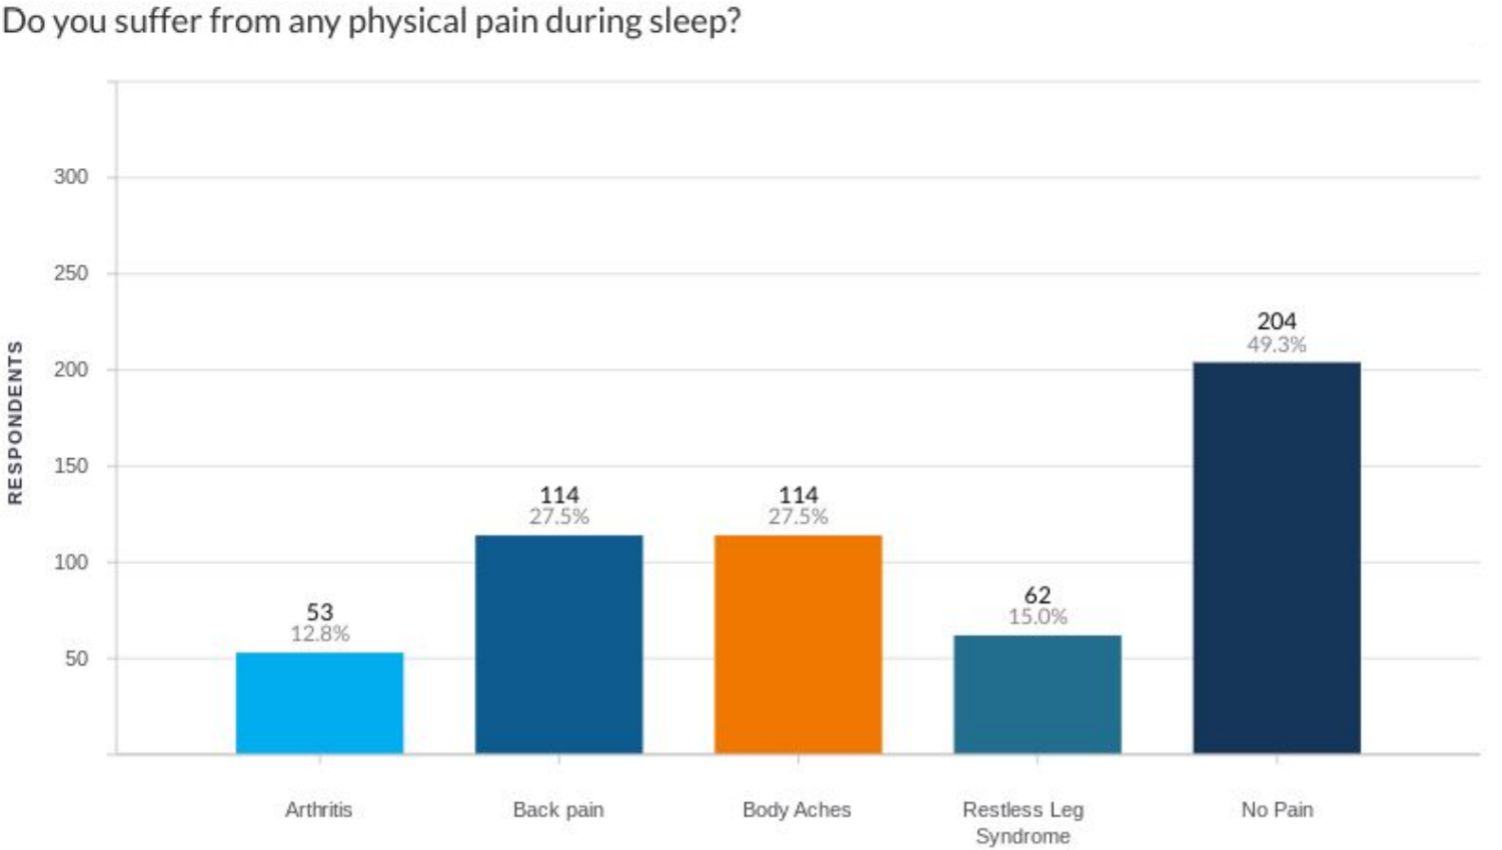 Do you Suffer from Physical Pain During Sleep Survey Answers